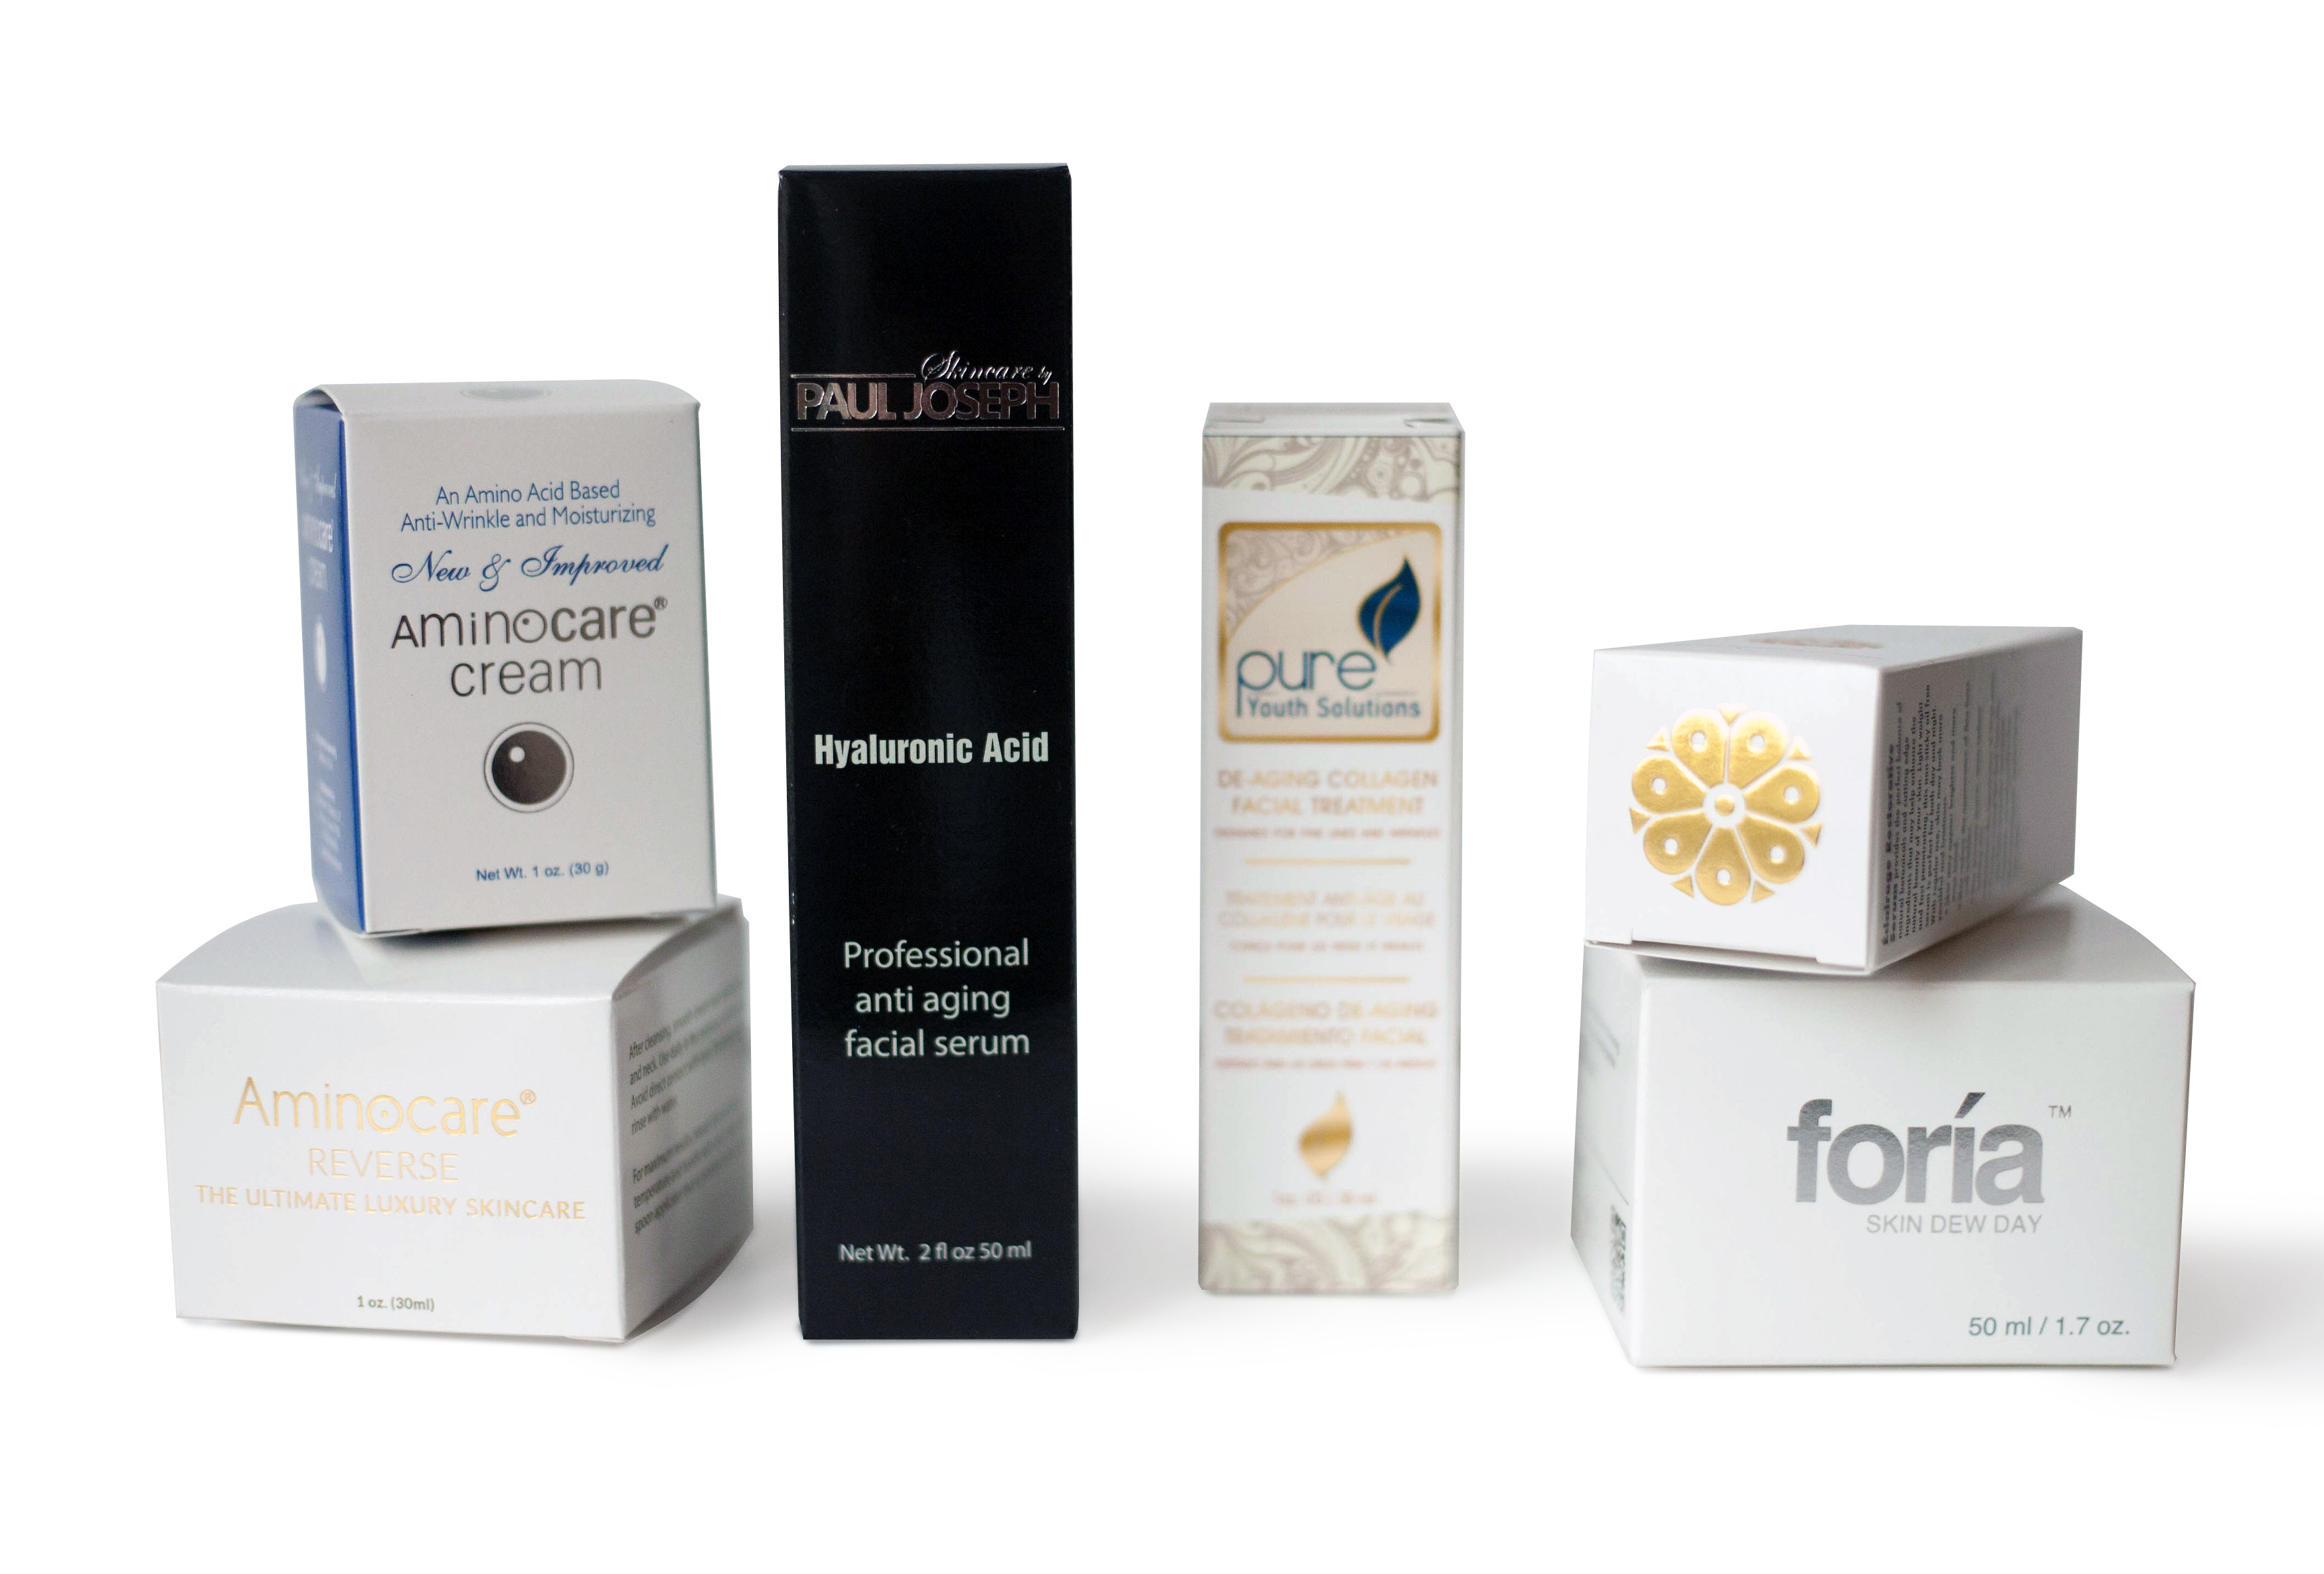 packaging cosmetic skincare boxes foil printing printed yourboxsolution box paper embossed stamped custom plastic debossed cartons folding market stamp samples